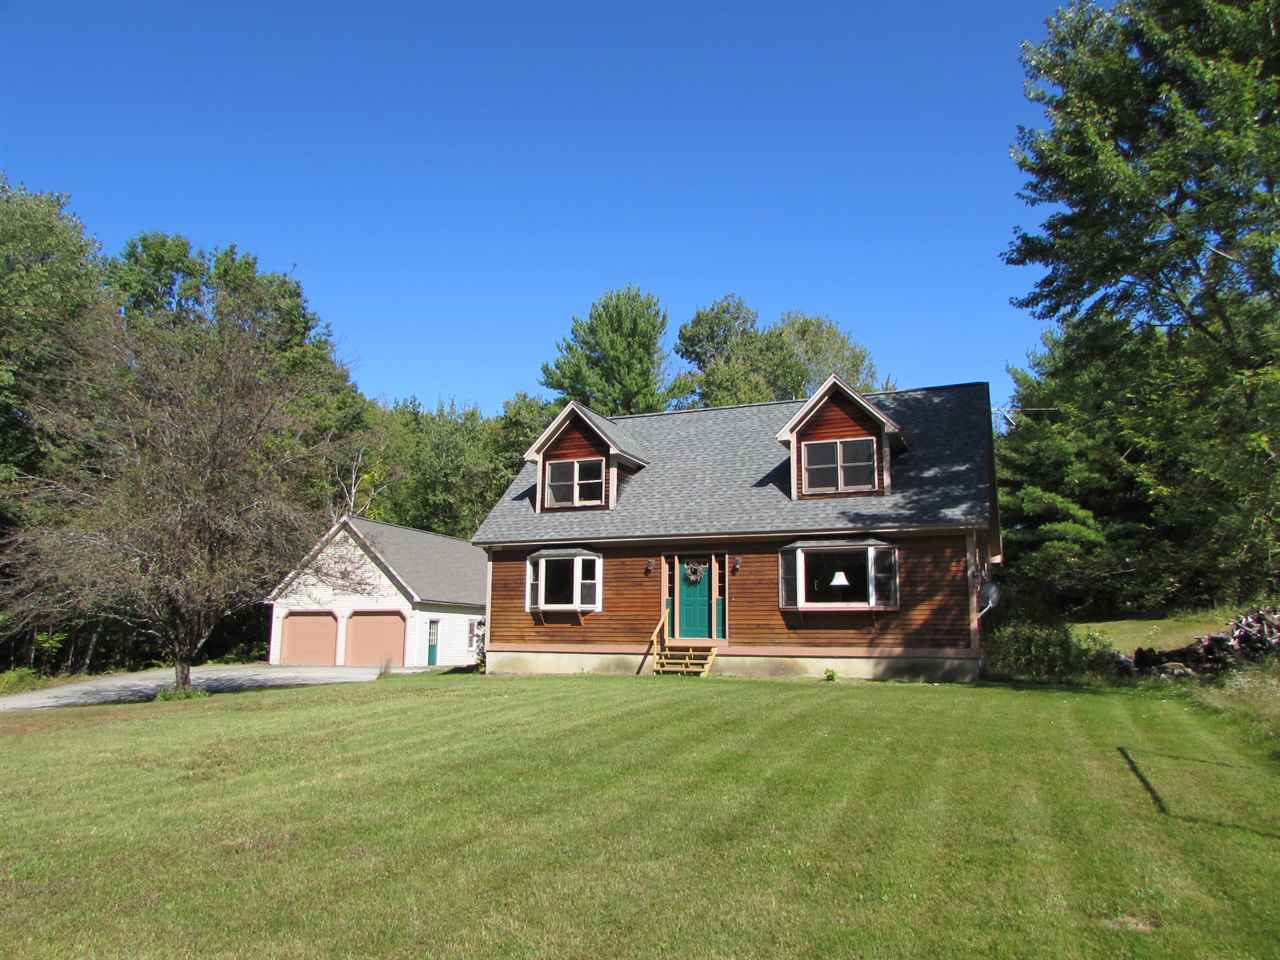 BOSCAWEN NH Homes for sale